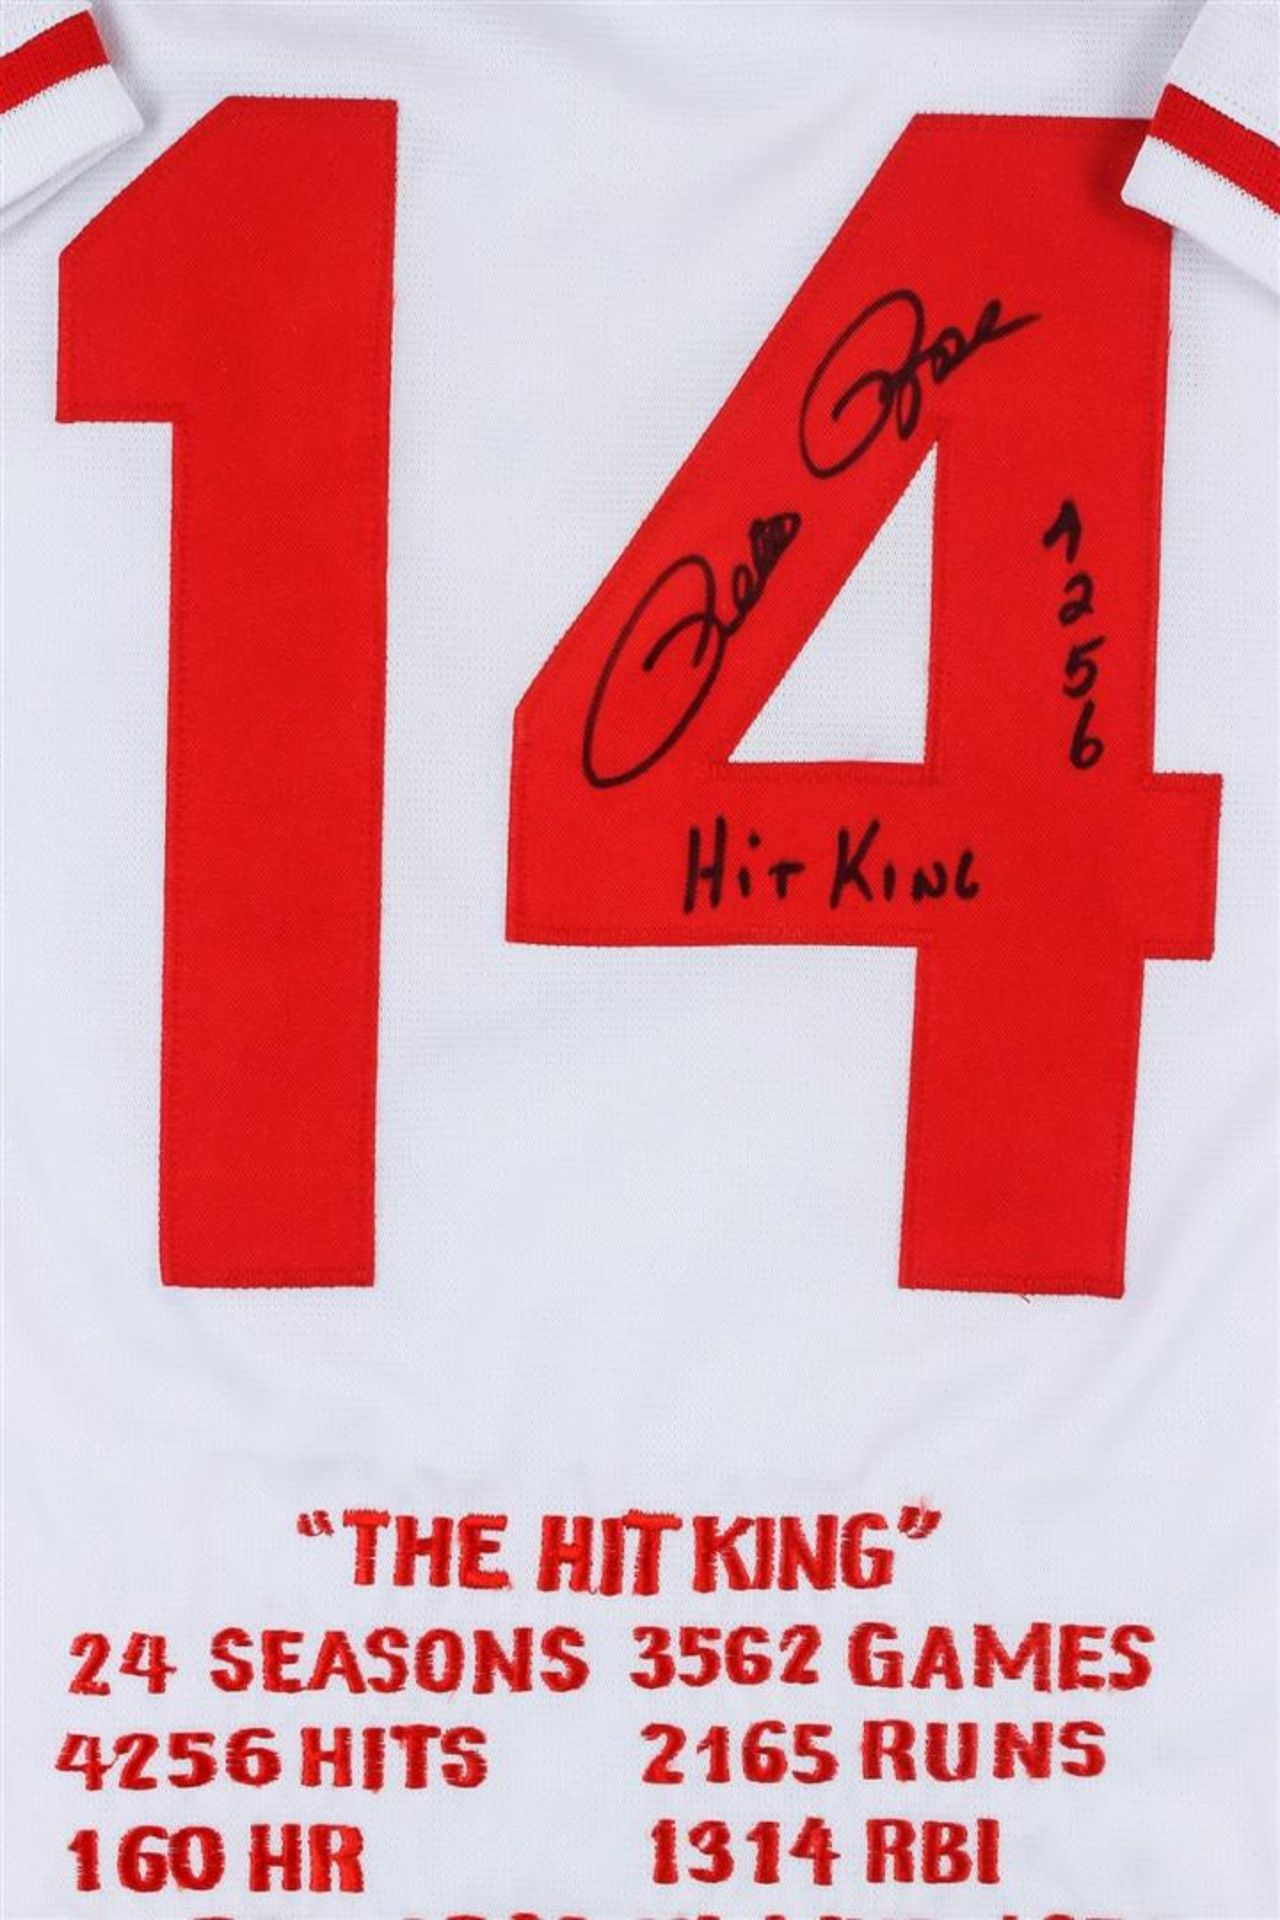 Cincinnati Reds Pete Rose Autographed Jersey With Stats - Image 2 of 3